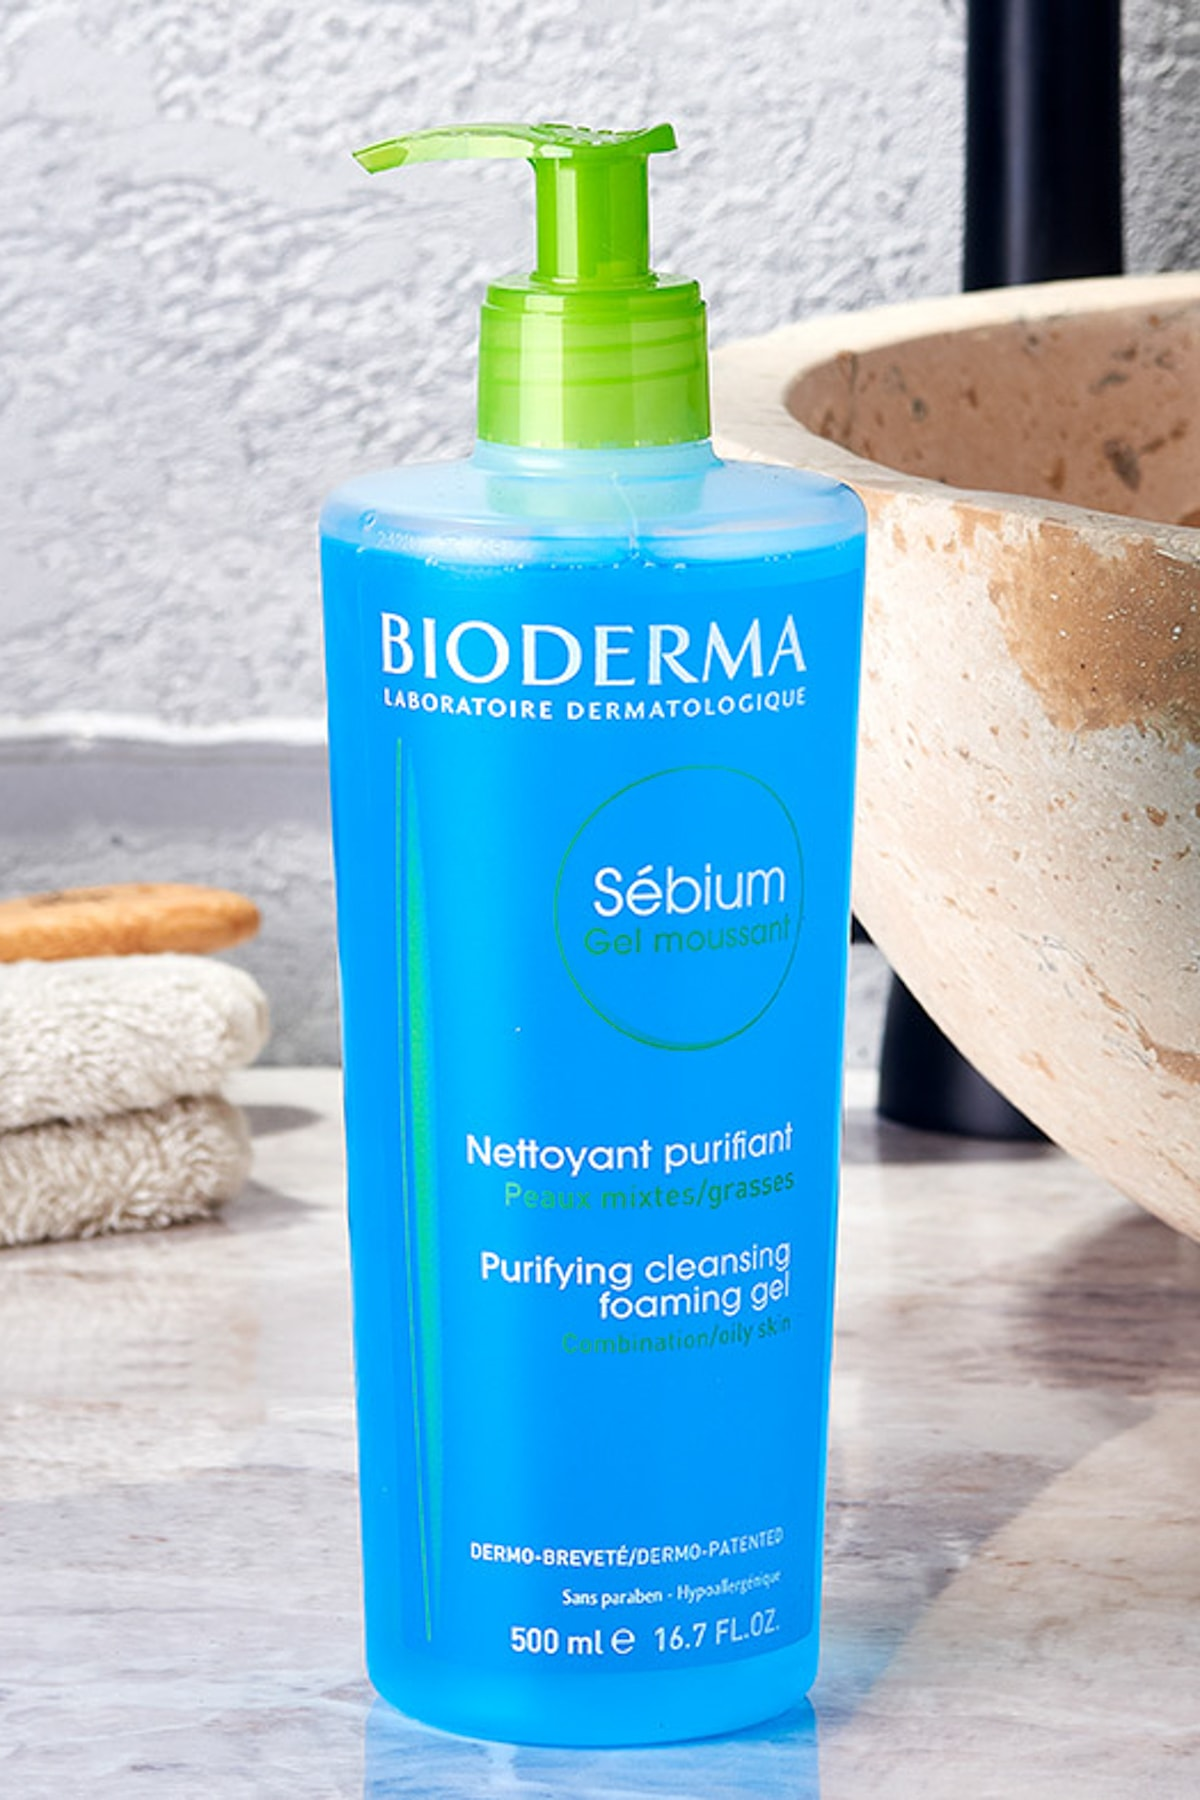 Bioderma Sébium Foaming Gel 500 ml 1